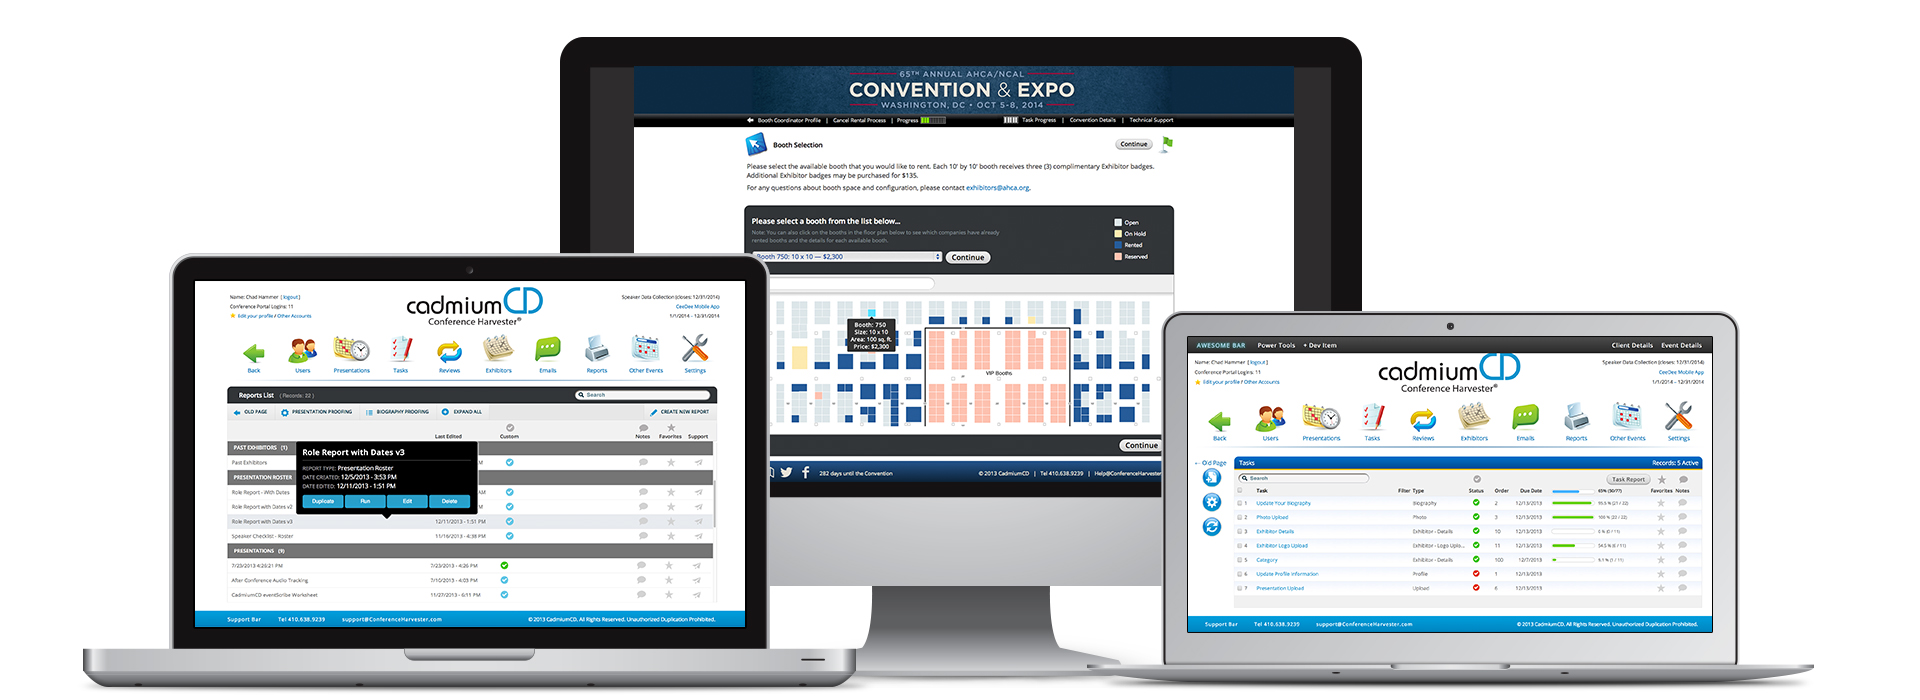 The CadmiumCD event management and content delivery platform can be used on any device. This image shows a Mac and two laptops display various eventScribe products.